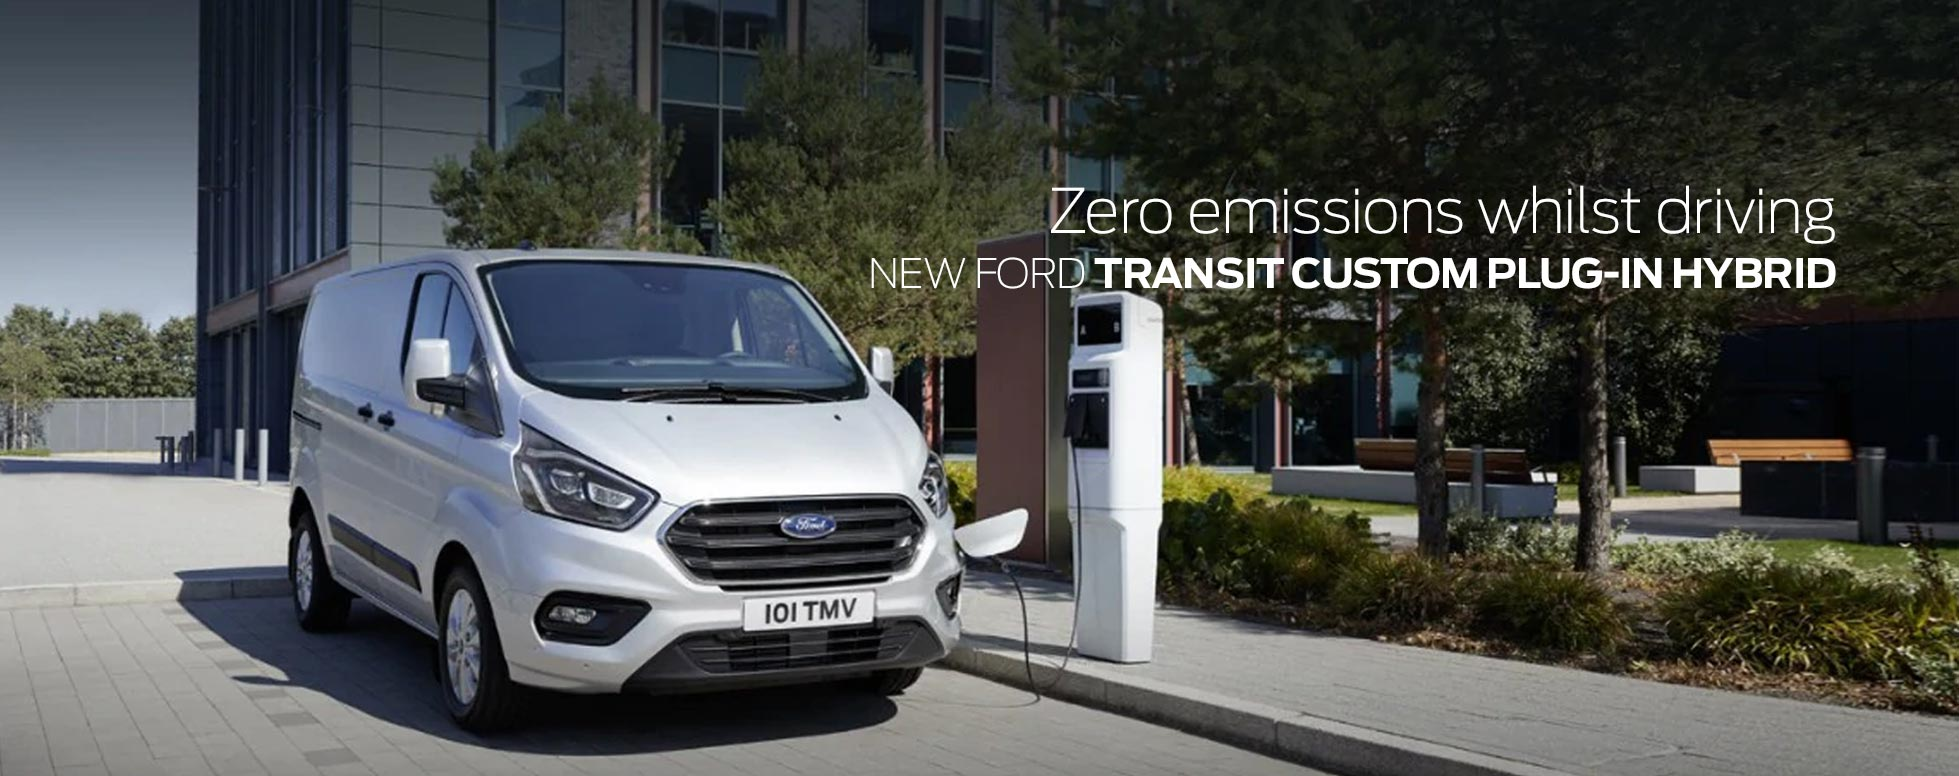 New Ford Transit Custom Plug-In Hybrid